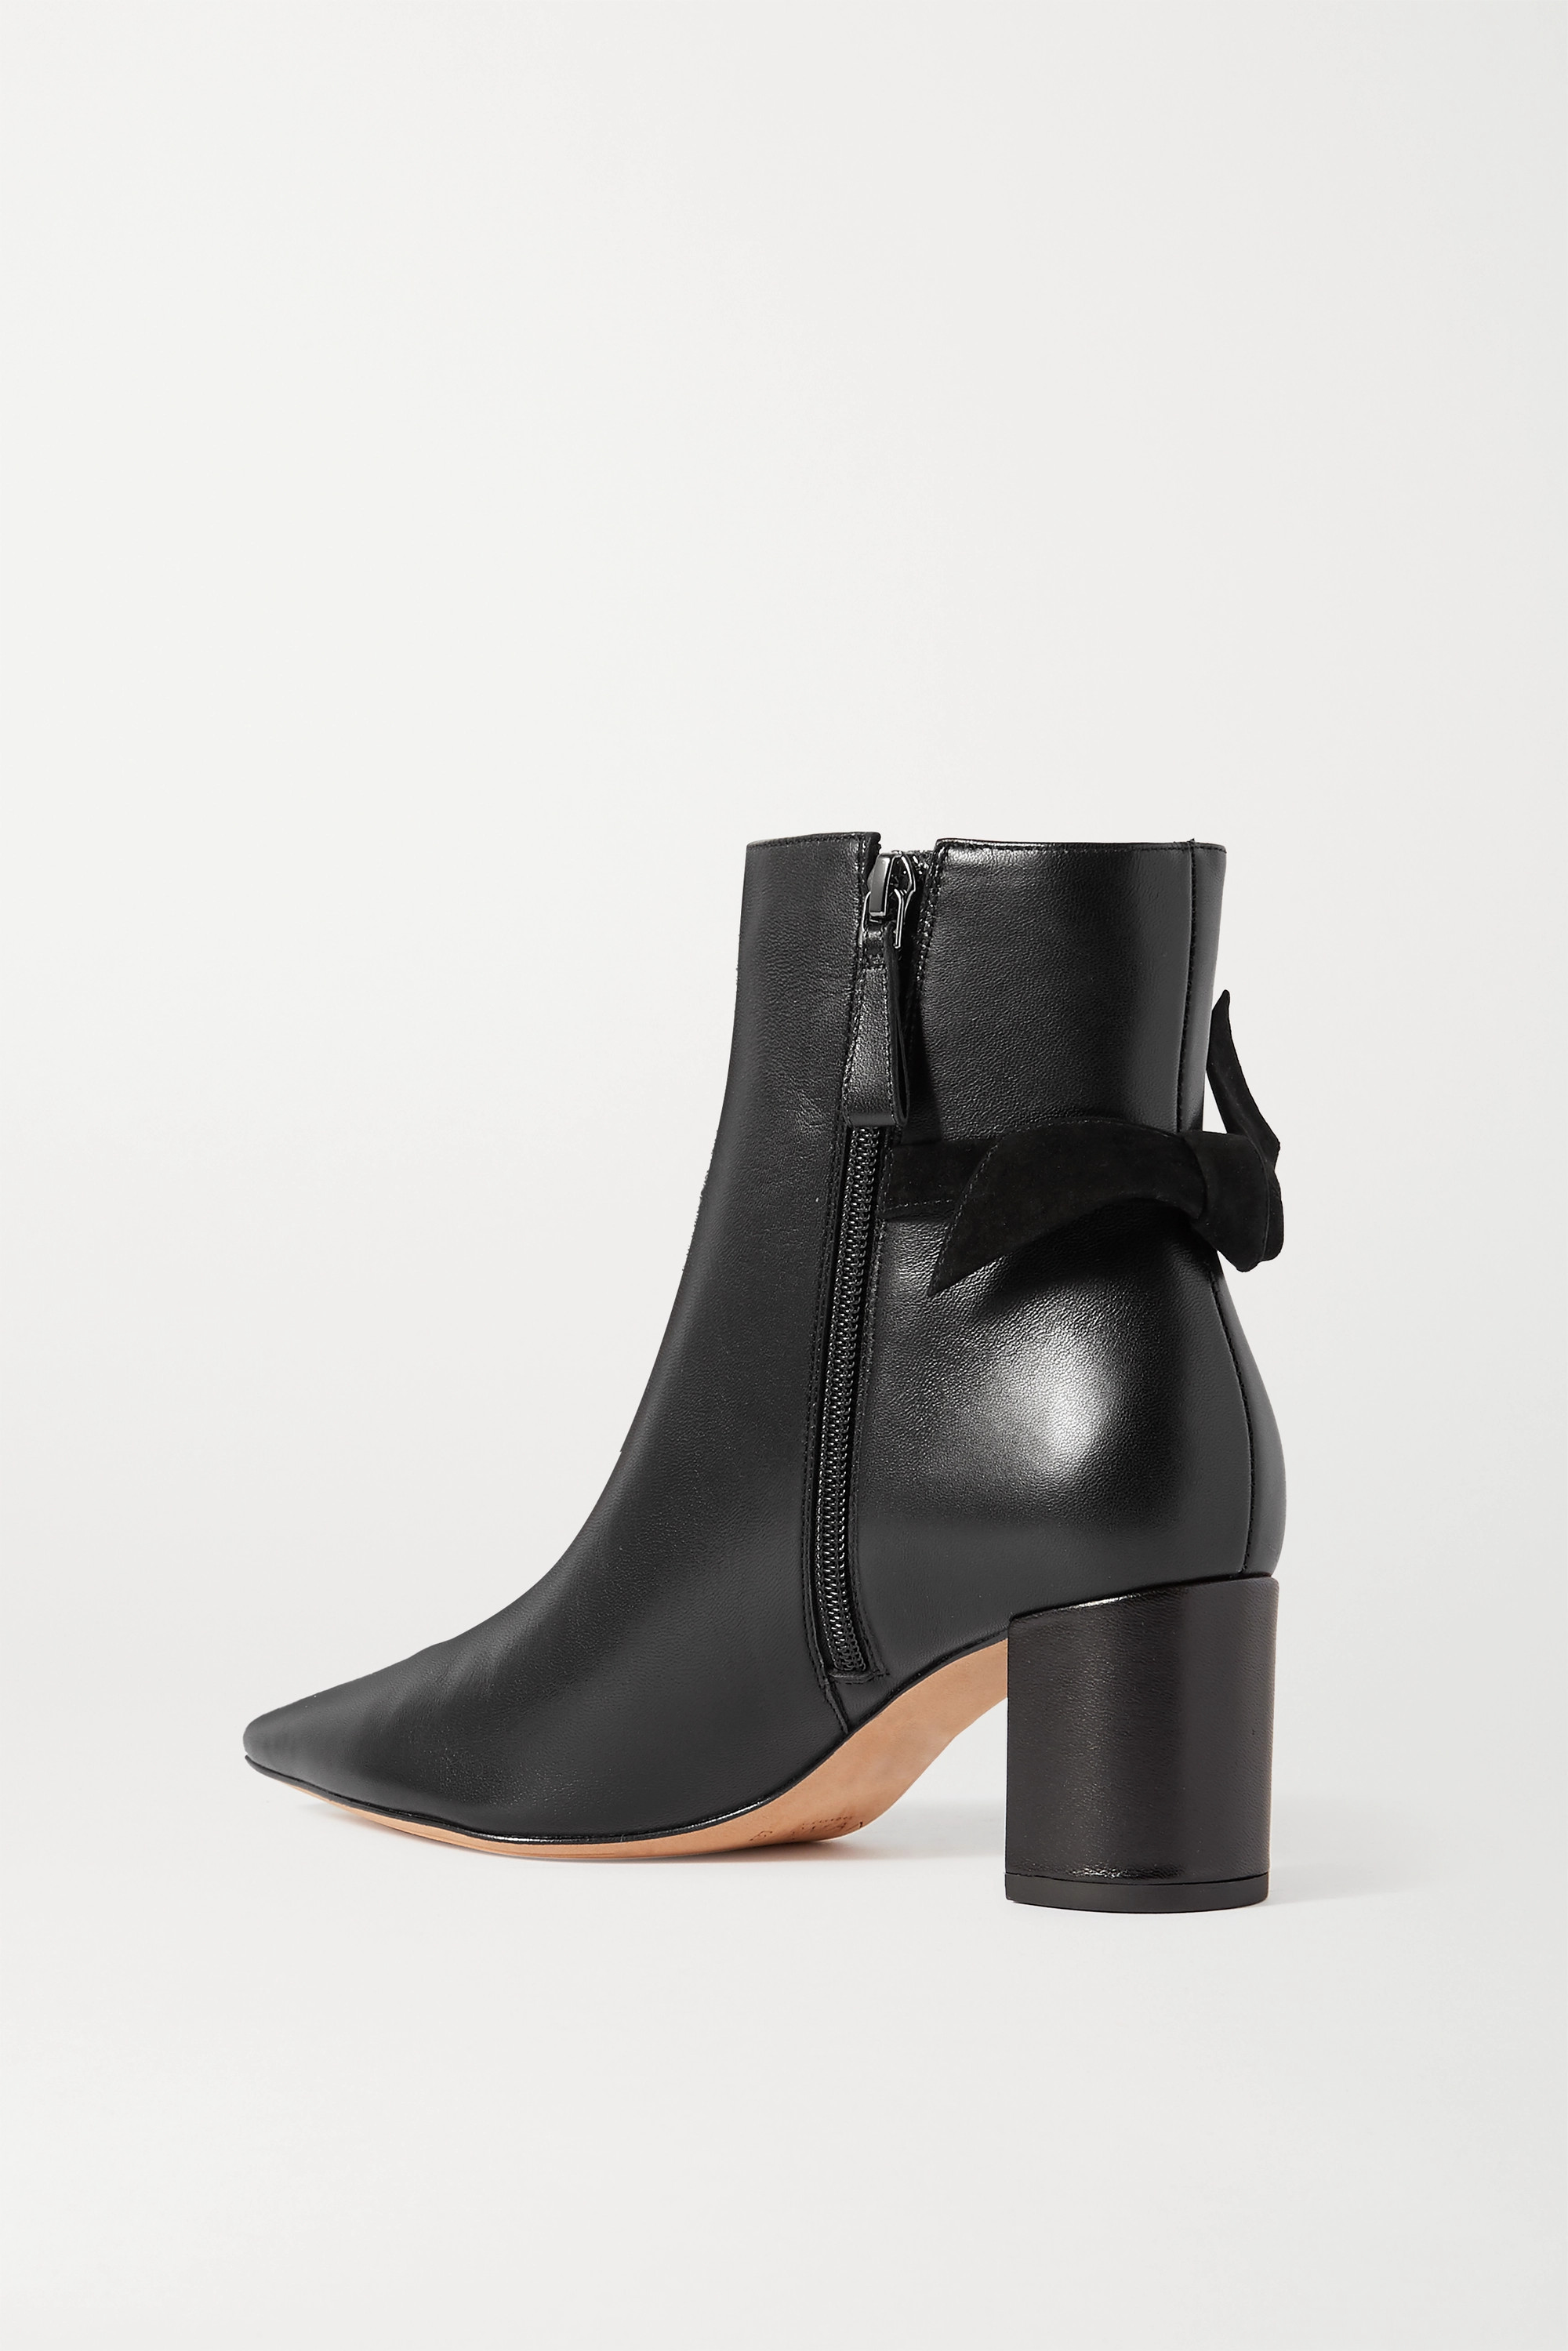 Alexandre Birman Clarita bow-embellished suede-trimmed leather ankle boots